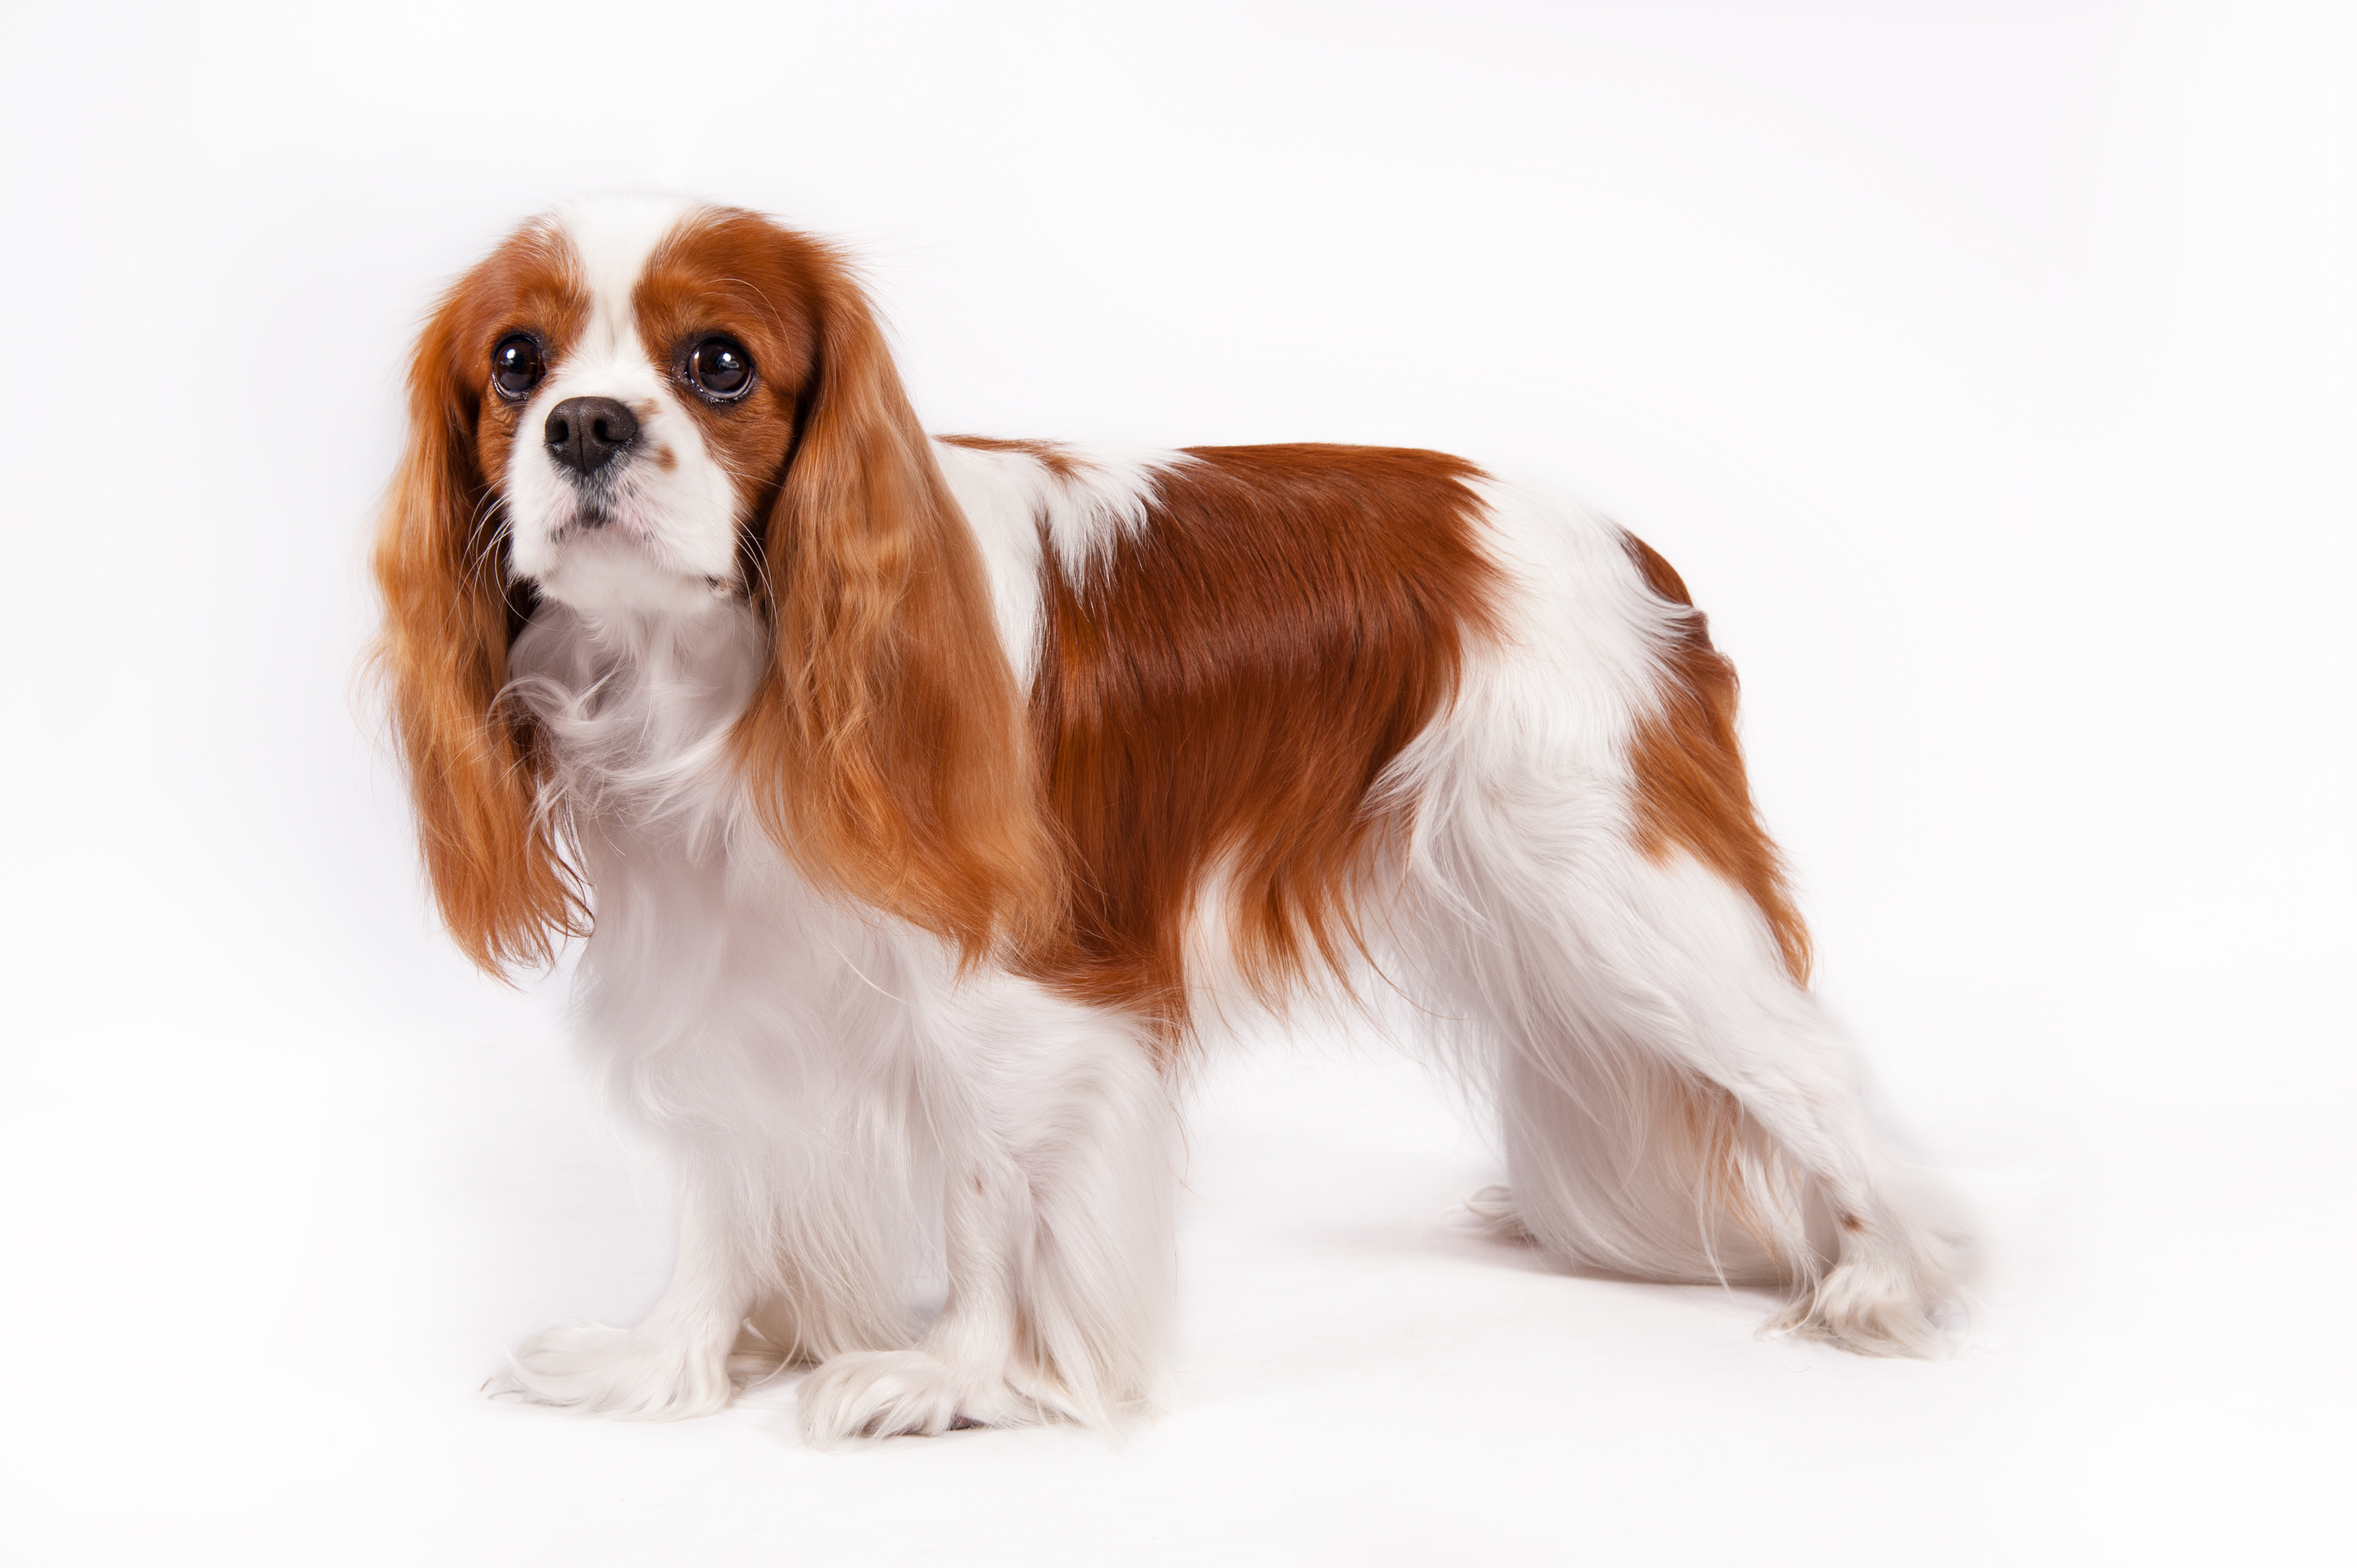 Dog Breeds Beloved by Royalty: Salukis, Shih Tzus, and More